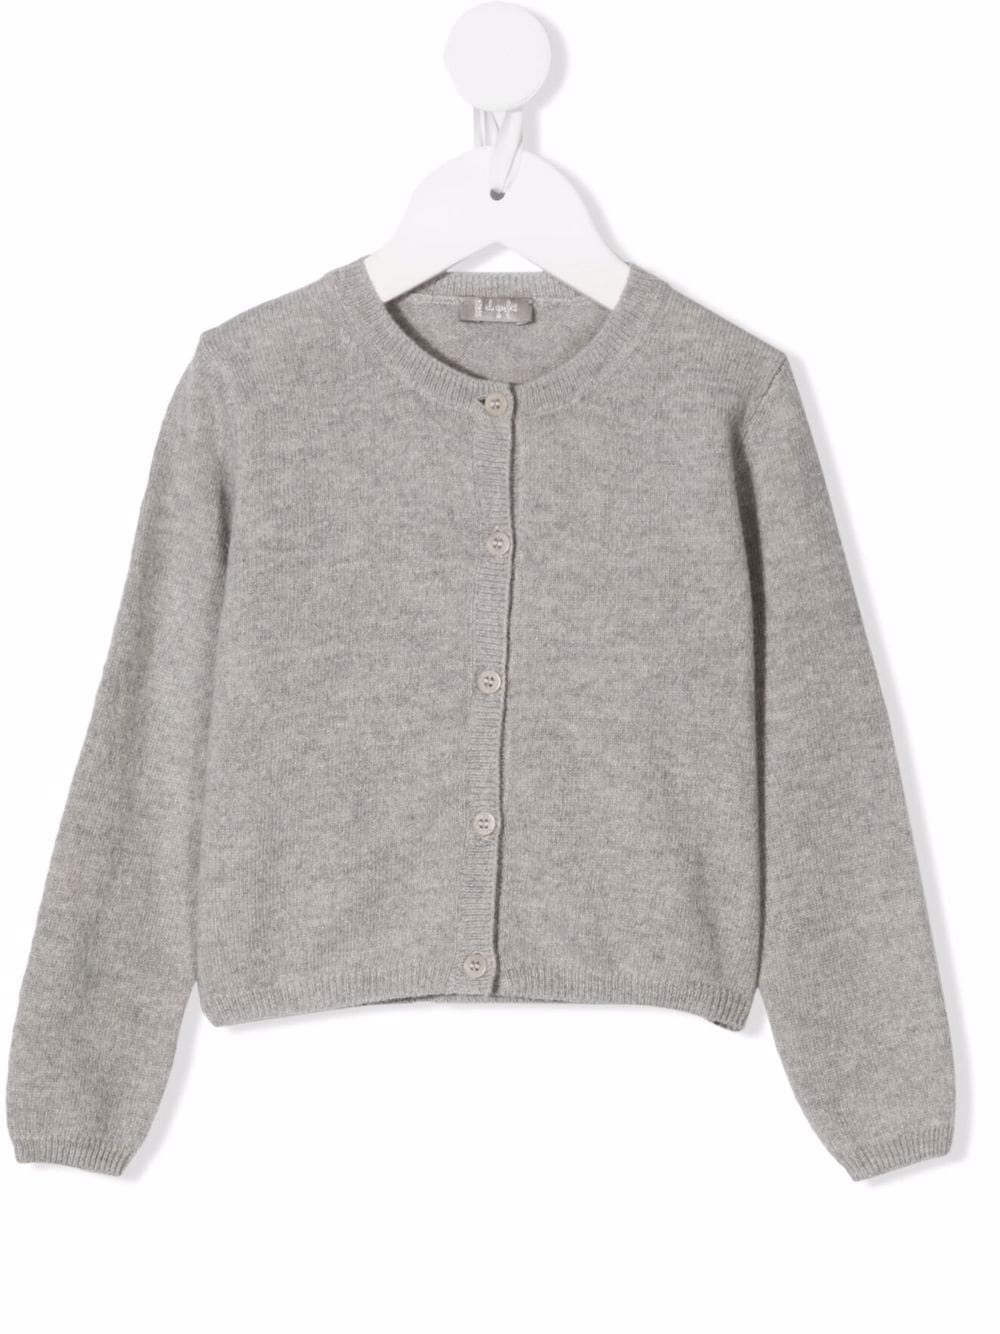 Kids Cardigan In Melange Grey Wool With Buttons